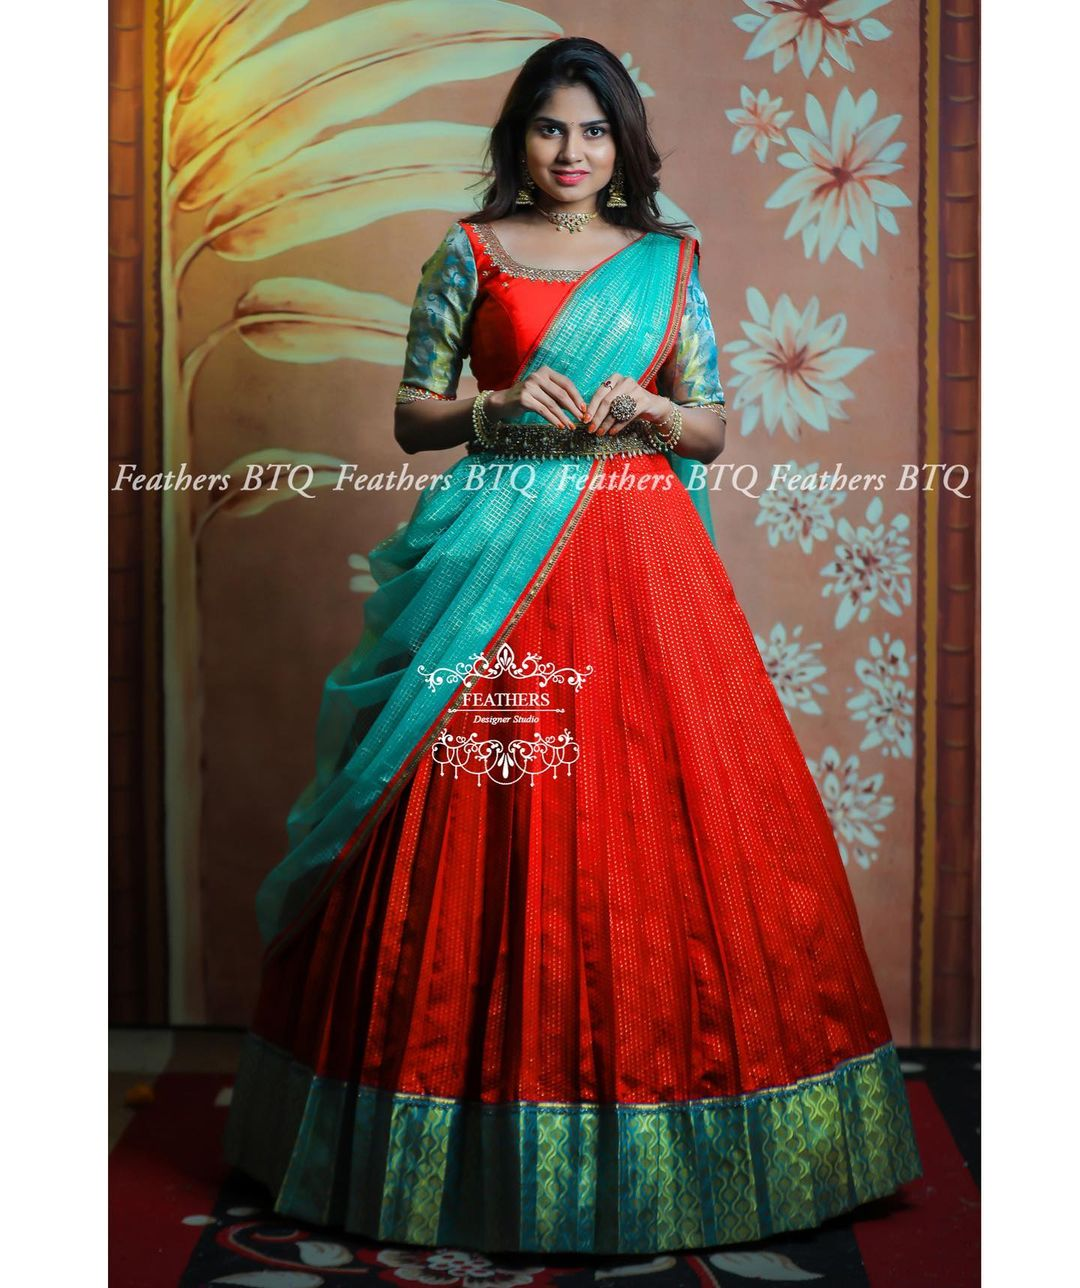 Stunning red and sea green color combination pattu langa and net voni. 2021-06-05